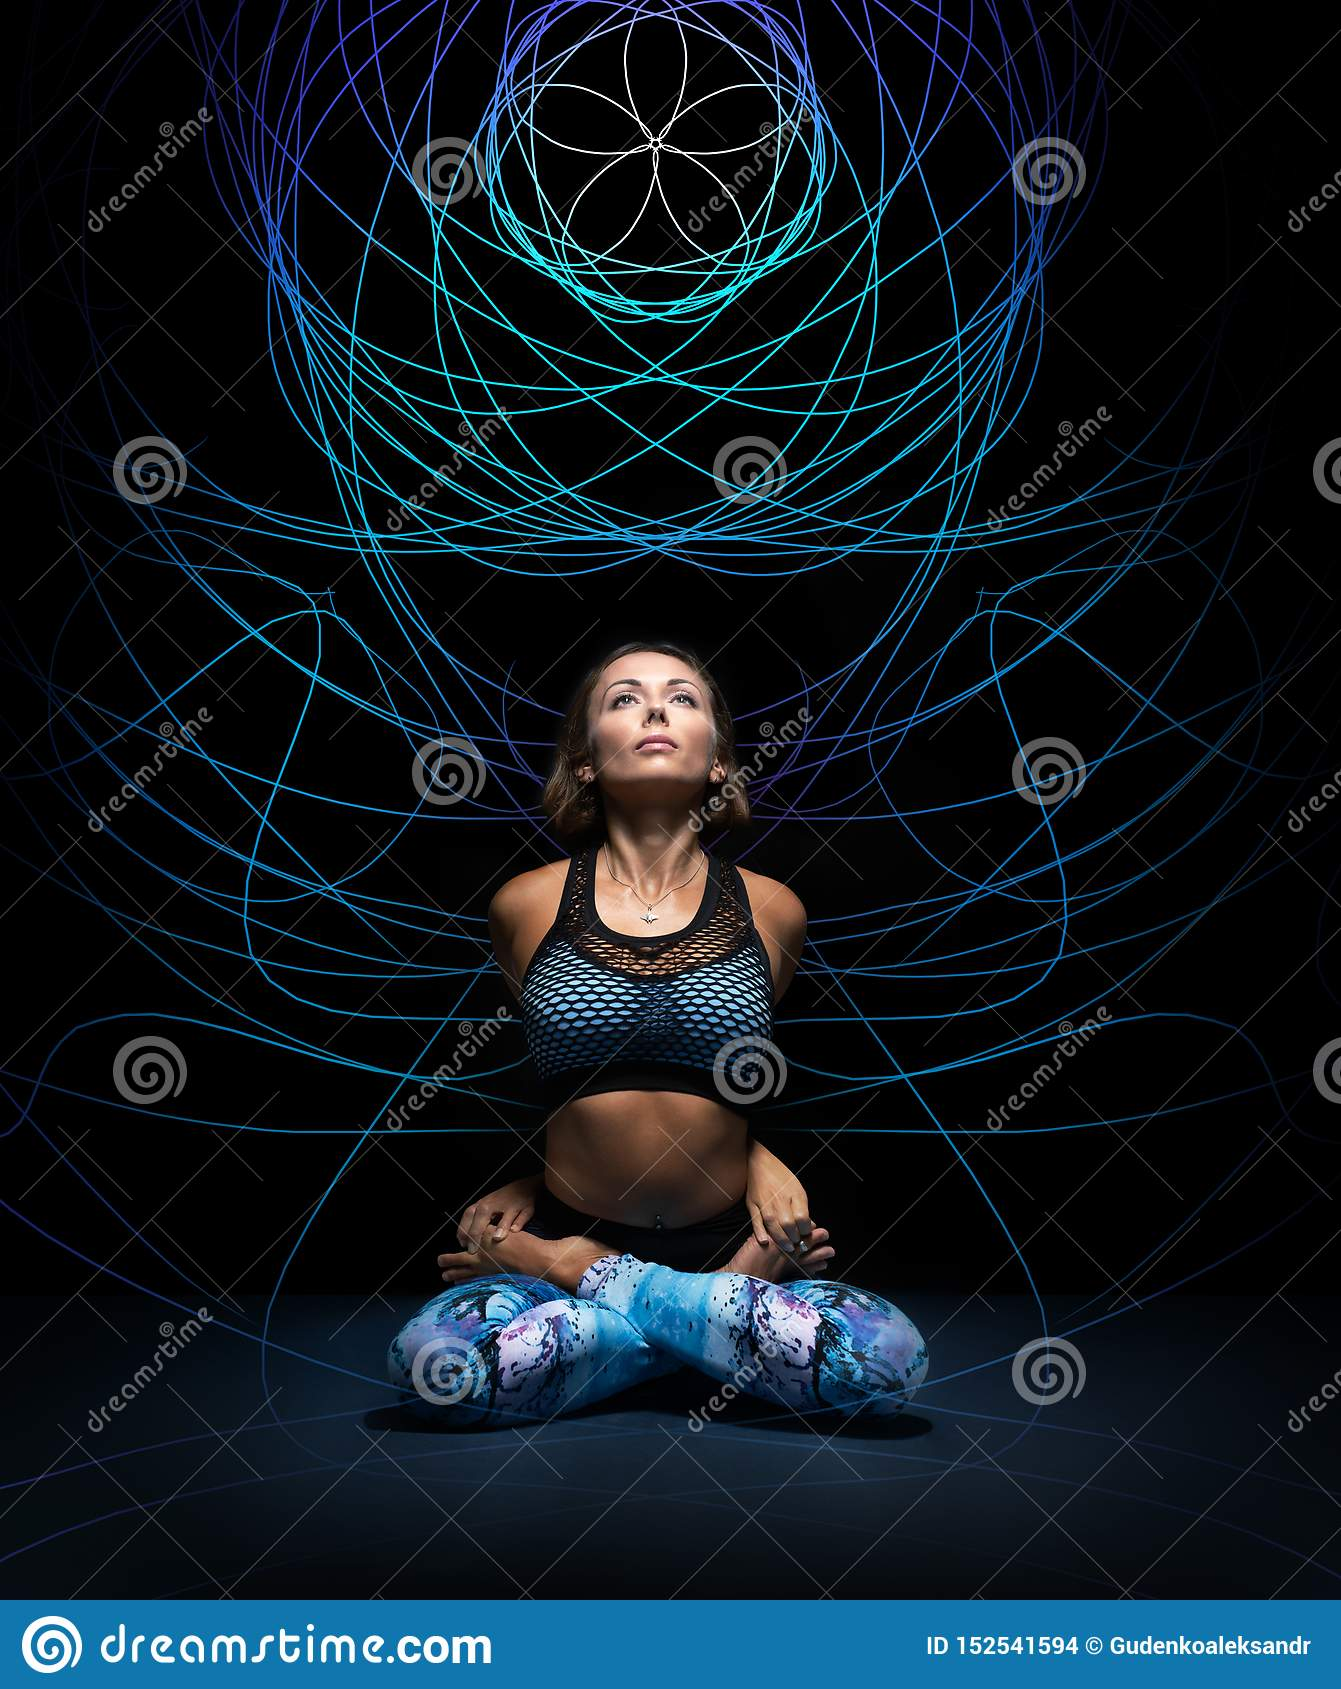 Beautiful young woman in padmasana pose. Colorful mandala on black background behind